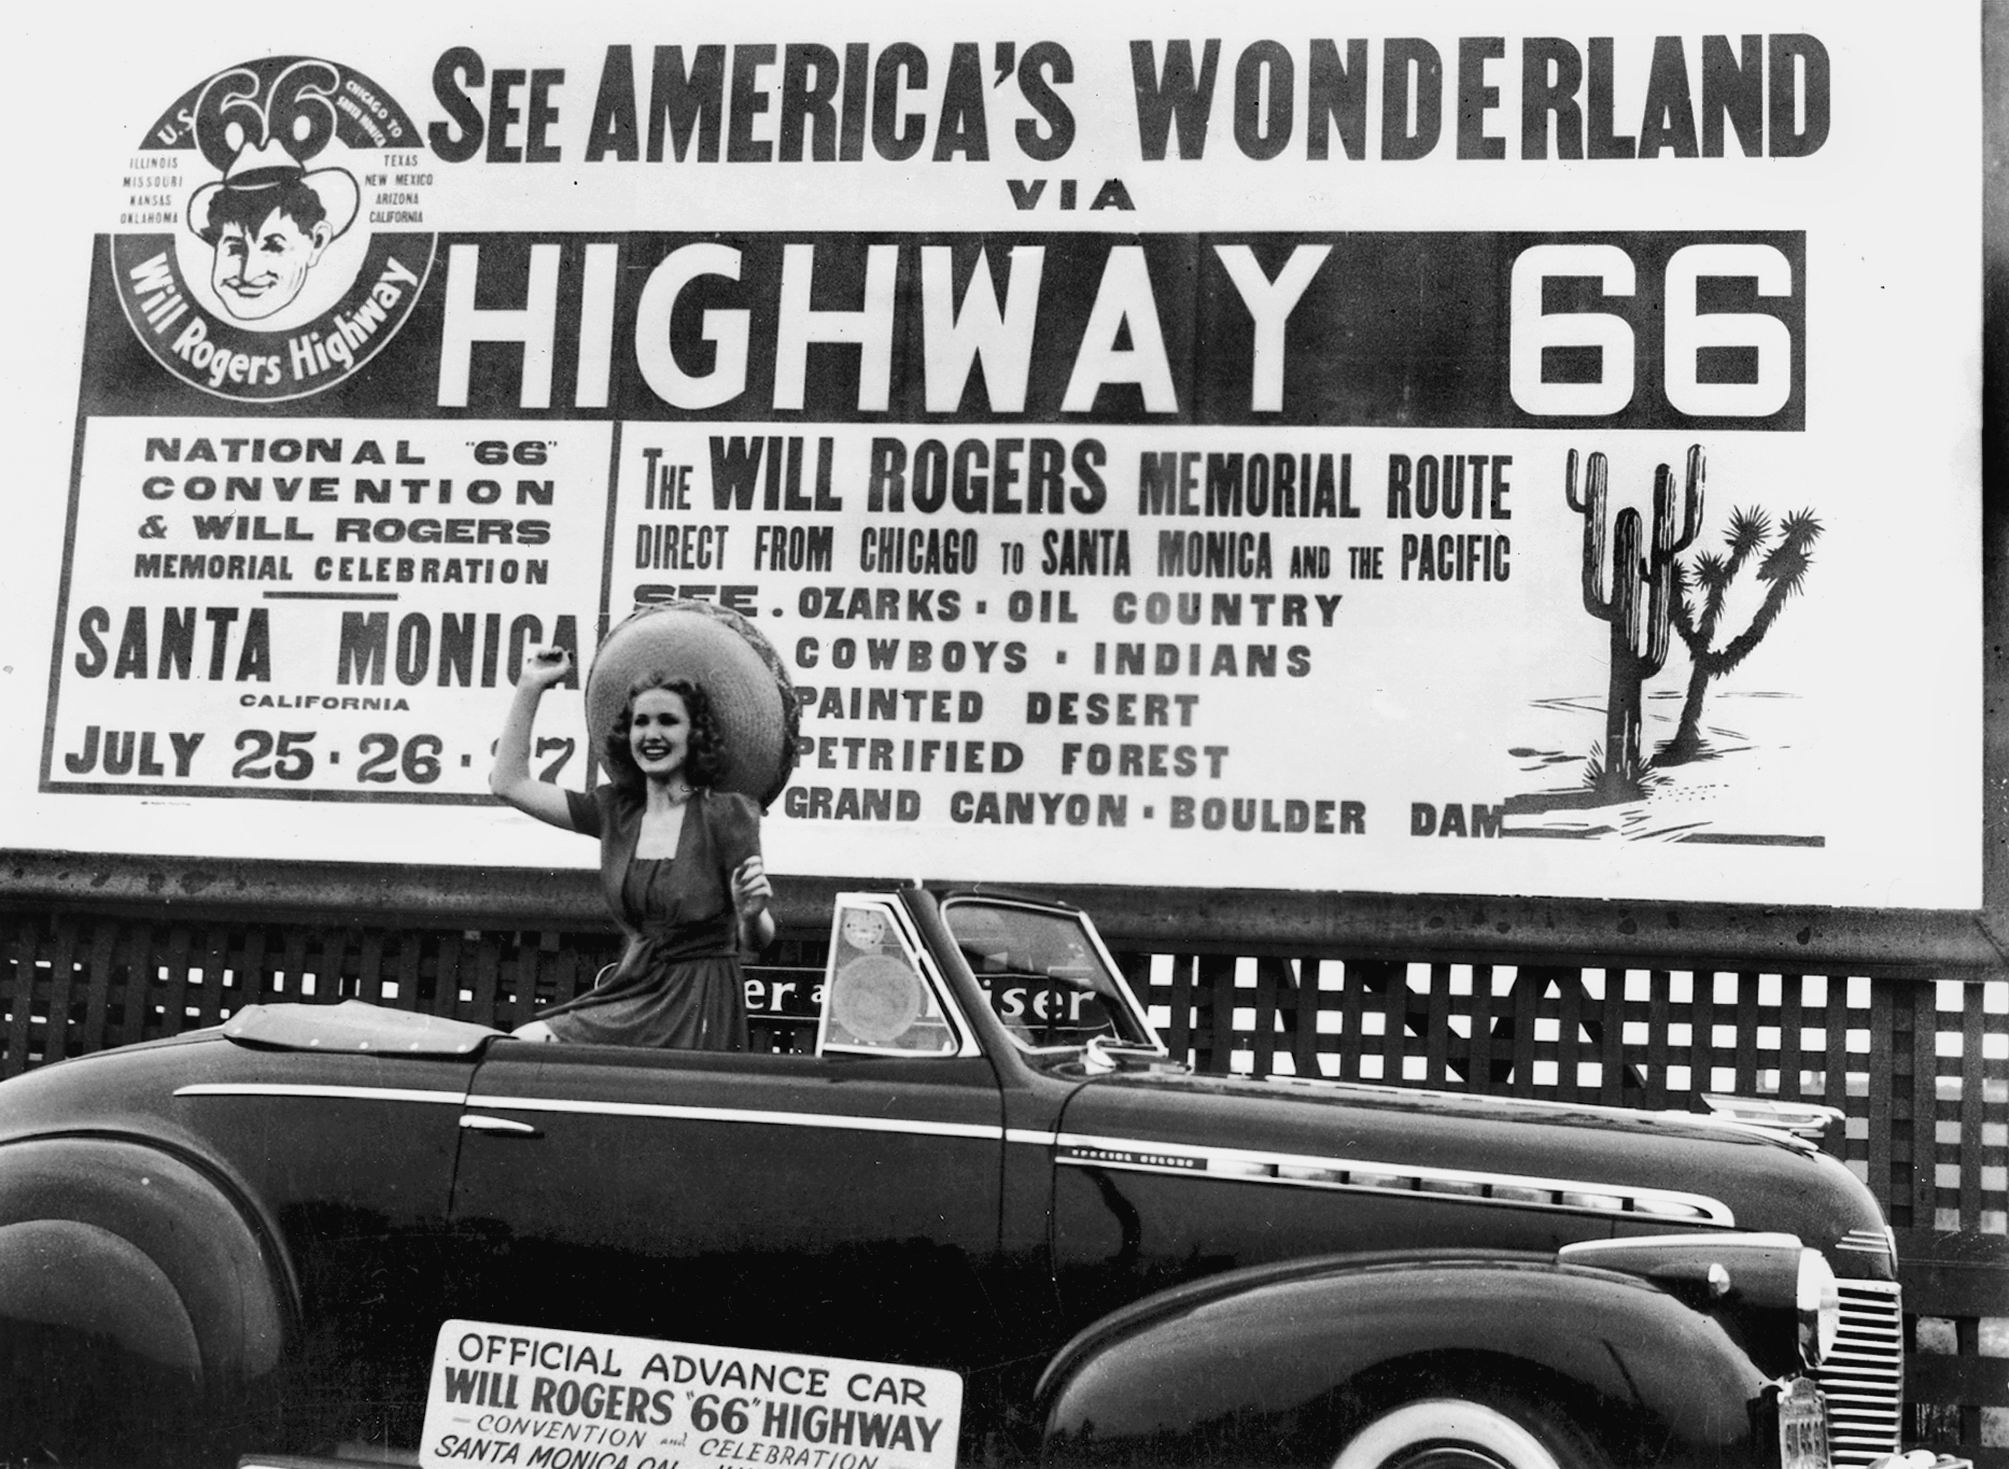 Highway 66 Association conference billboard, 1940s.